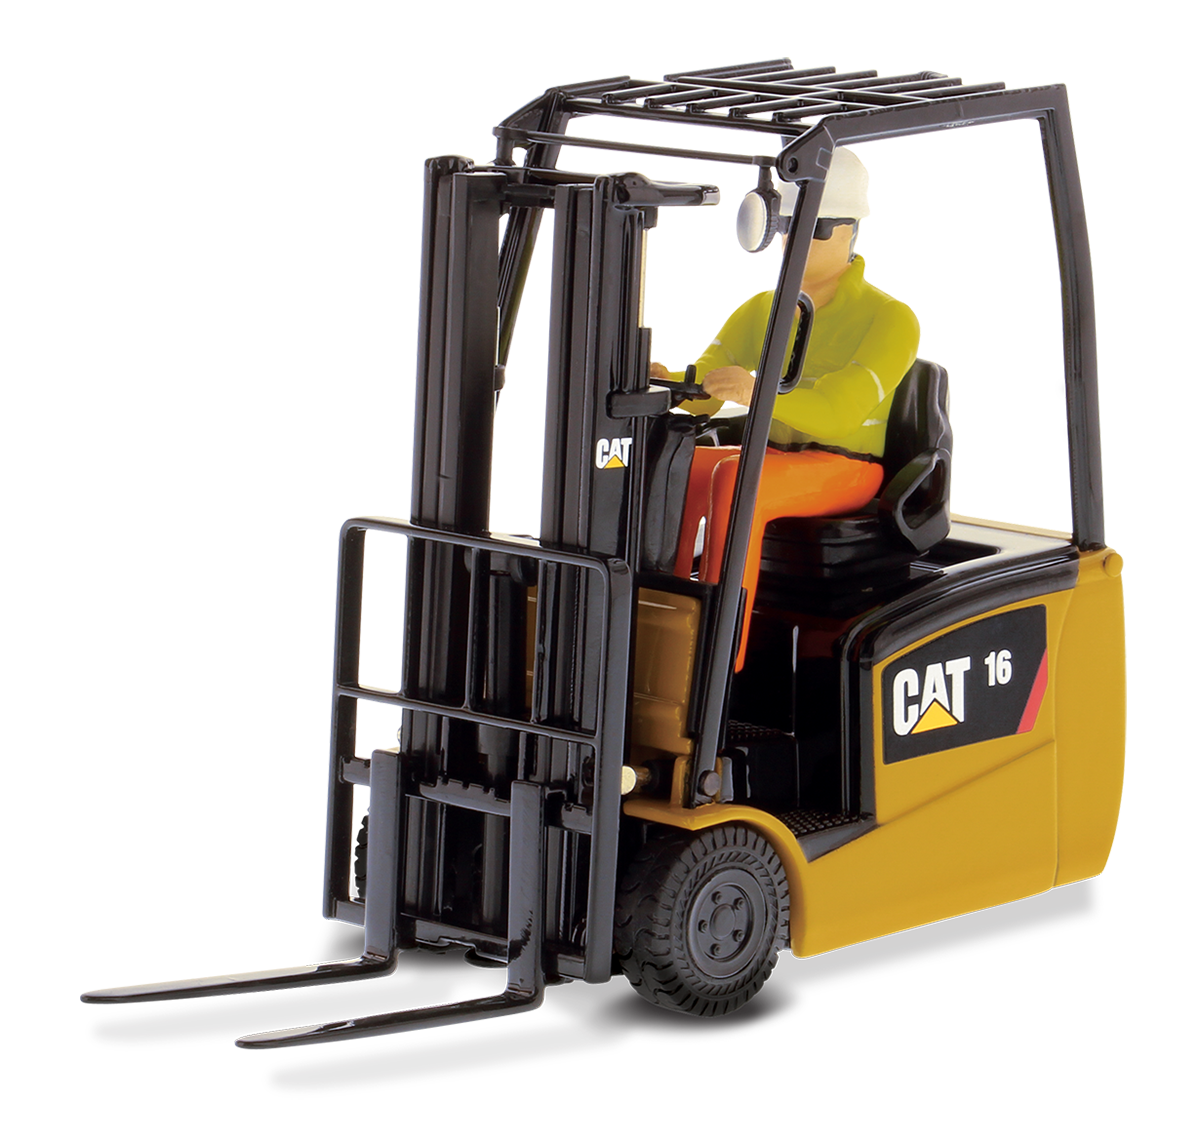 CAT EP16(C)PNY Lift Truck 85504